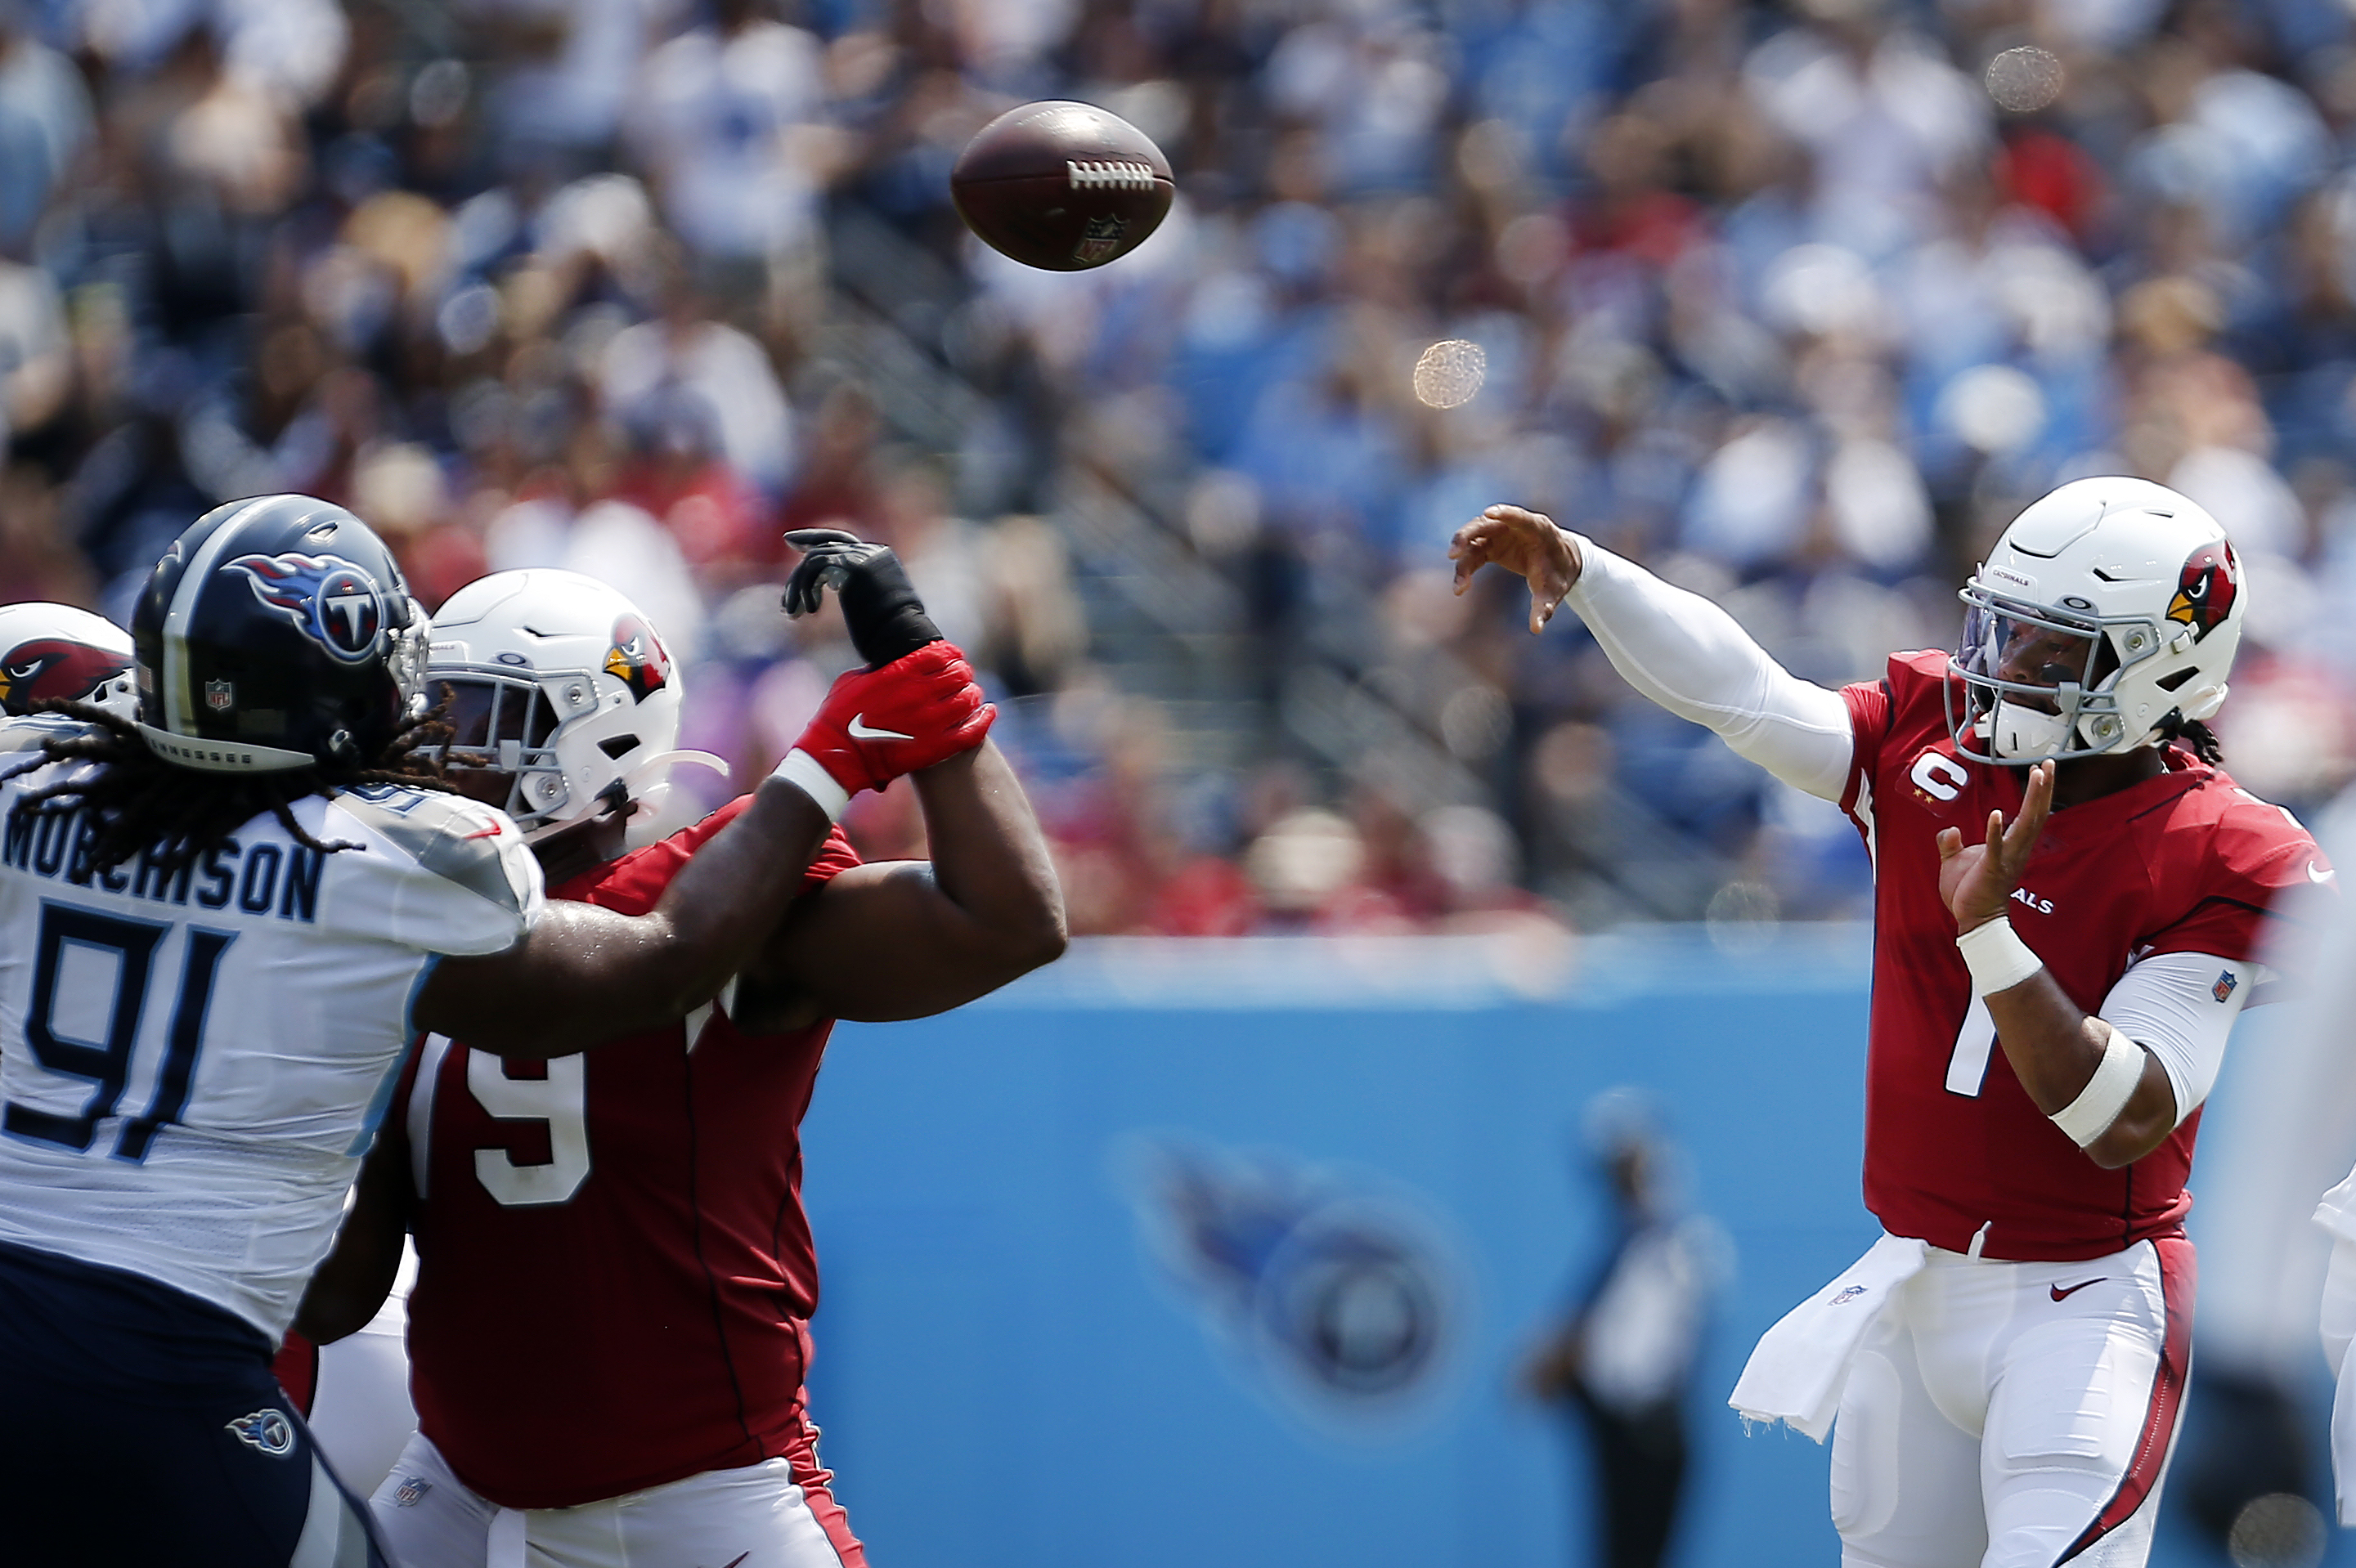 Kyler Murray #1 of the Arizona Cardinals throws a pass against the Tennessee Titans during the first quarter at Nissan Stadium on September 12, 2021 in Nashville, Tennessee.